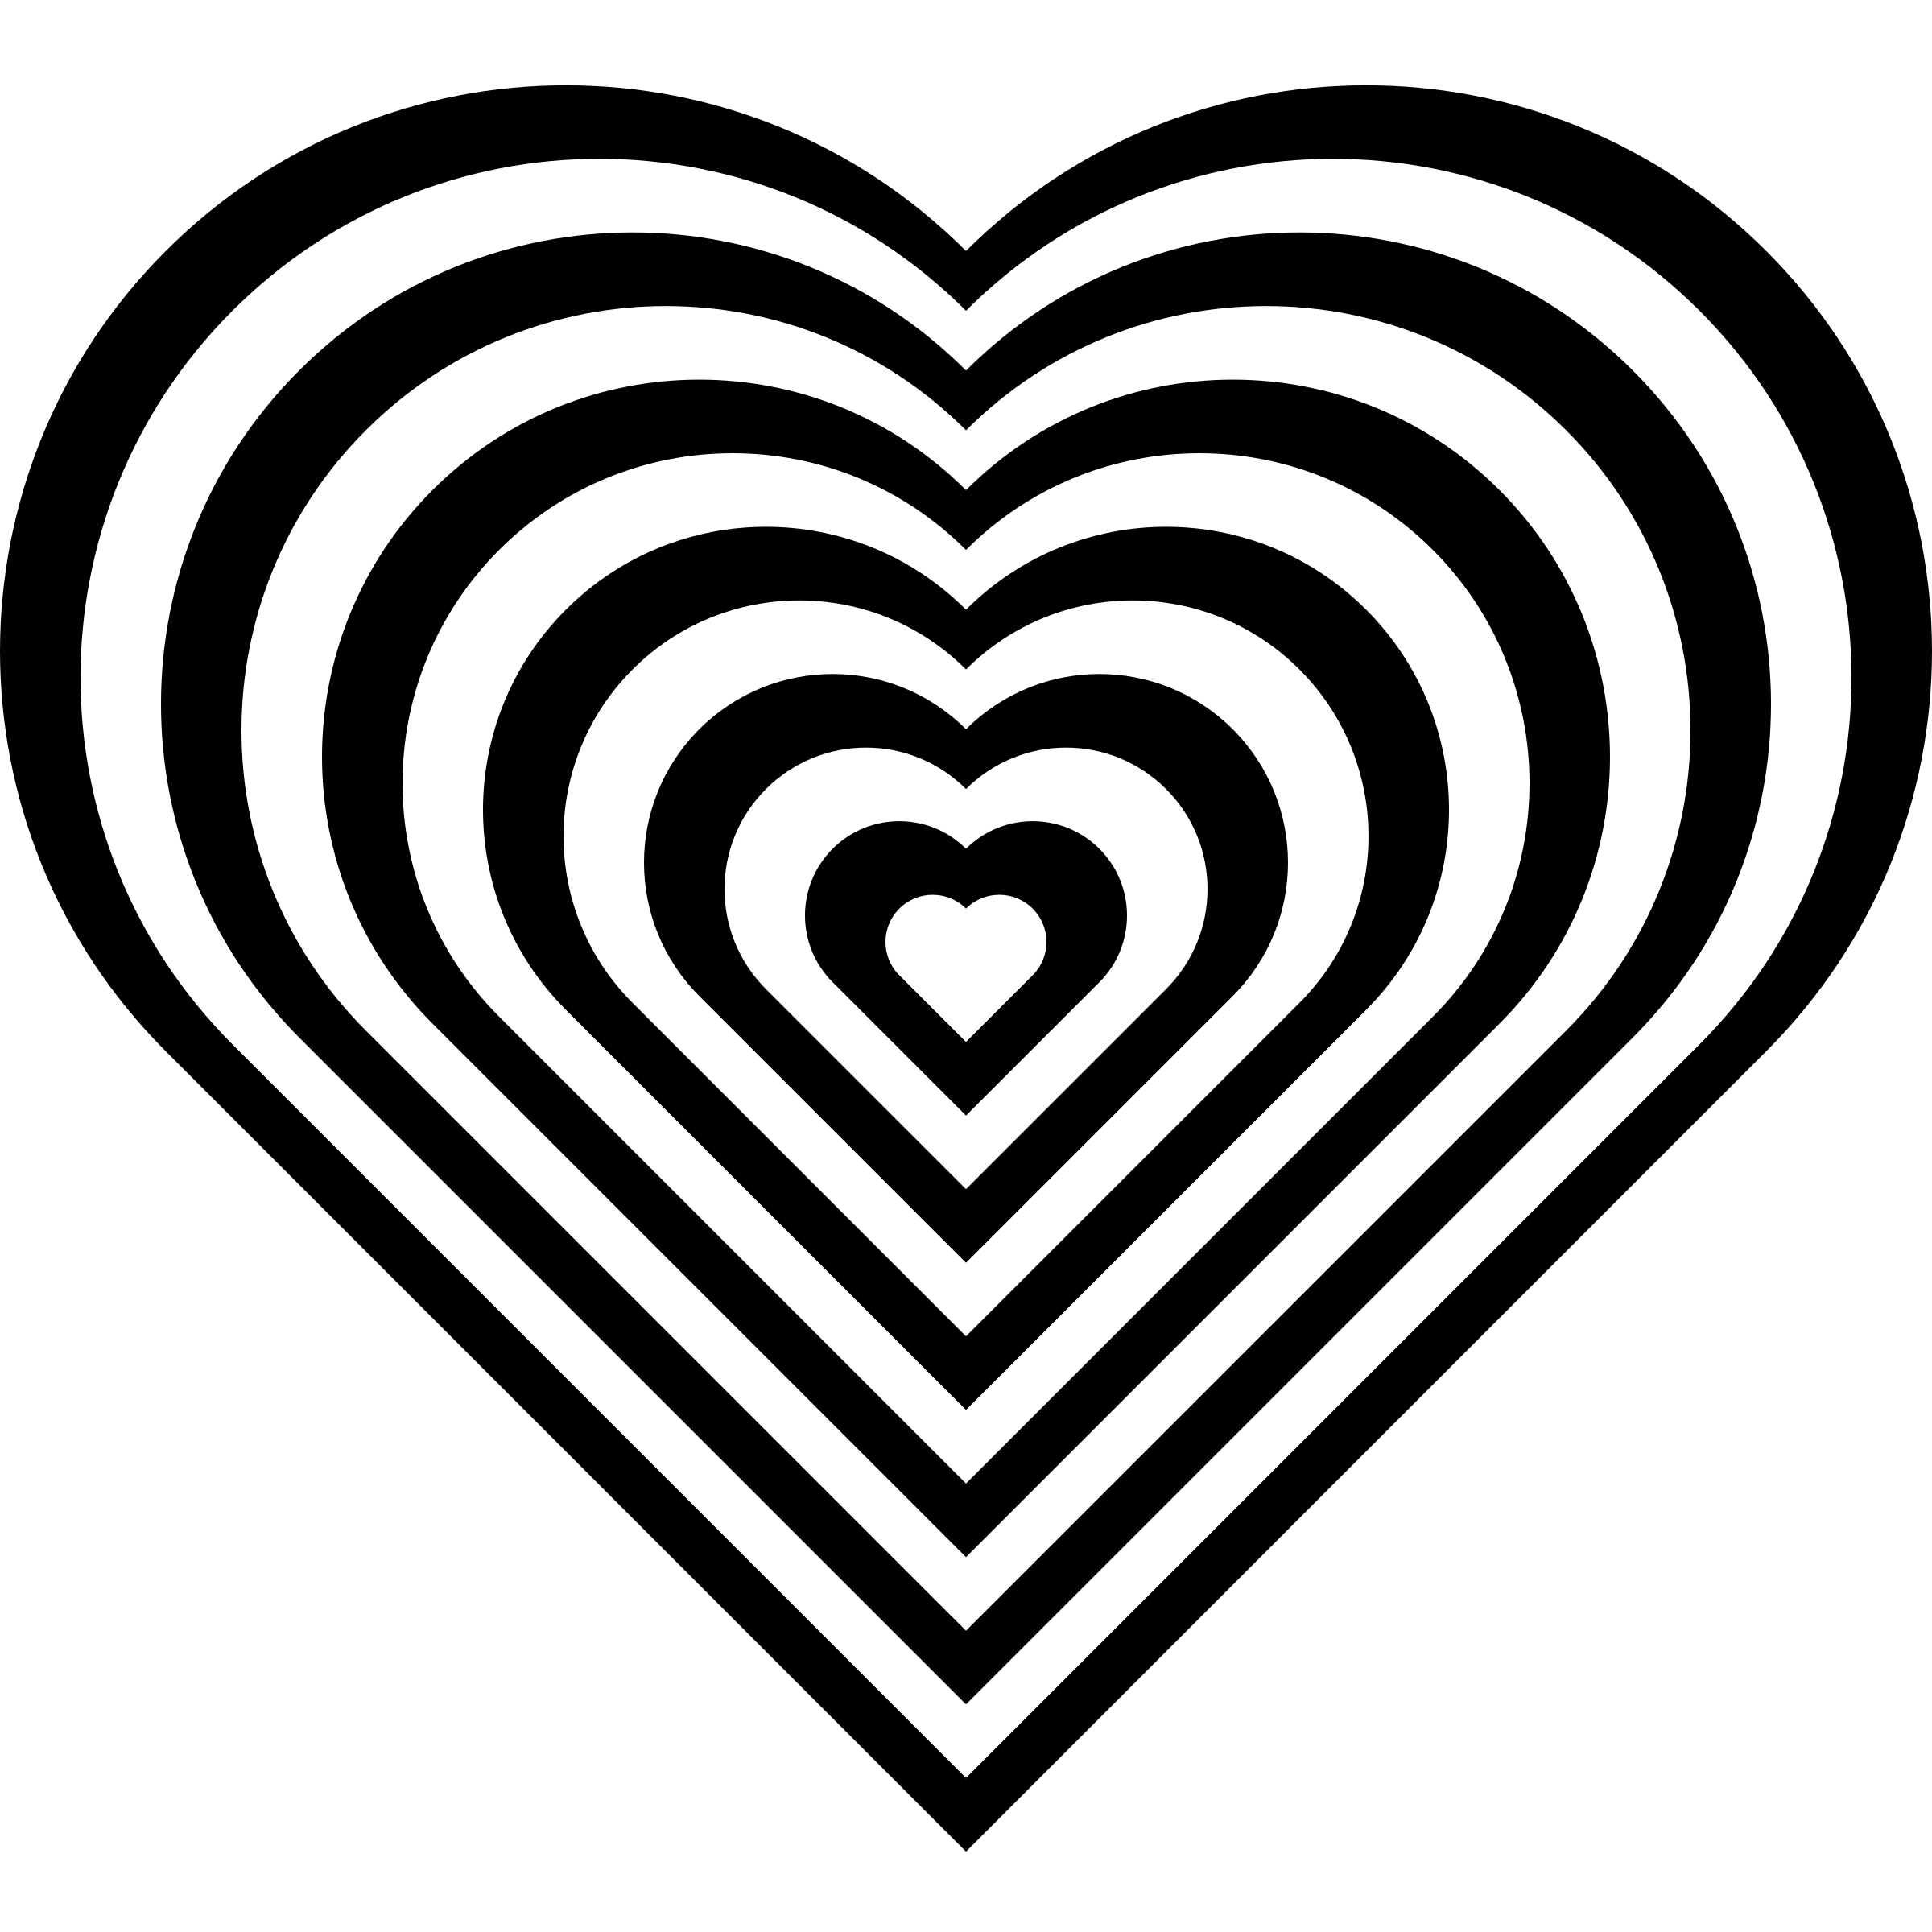 geometric zebra heart by 10binary